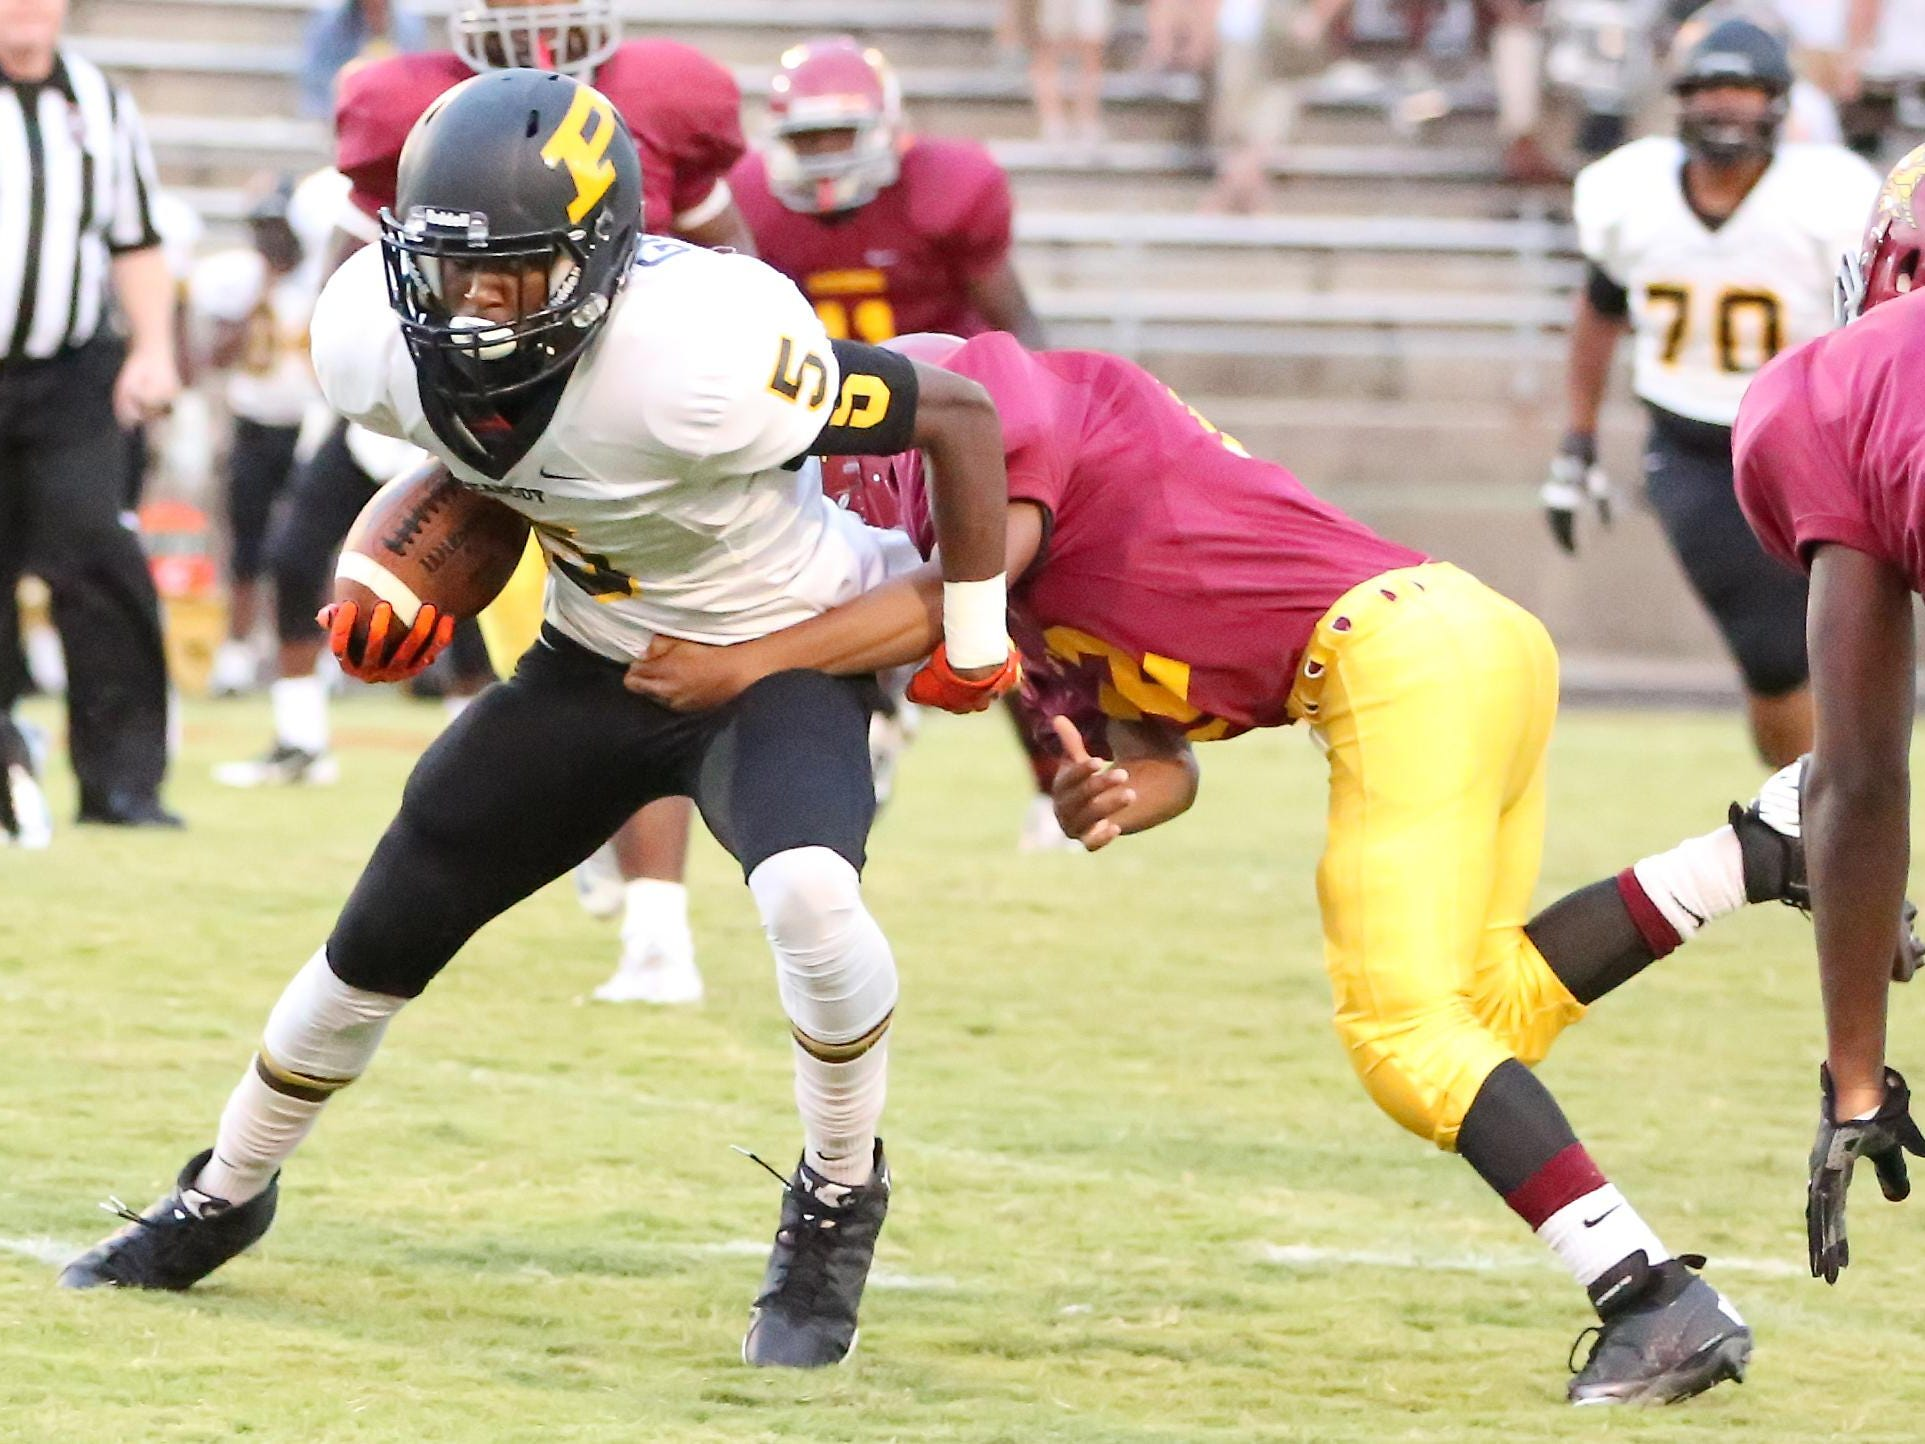 Trenton Peabody's Keyvon Goodwin gets tackled by Humboldt's Denzel Epperson on Friday night.